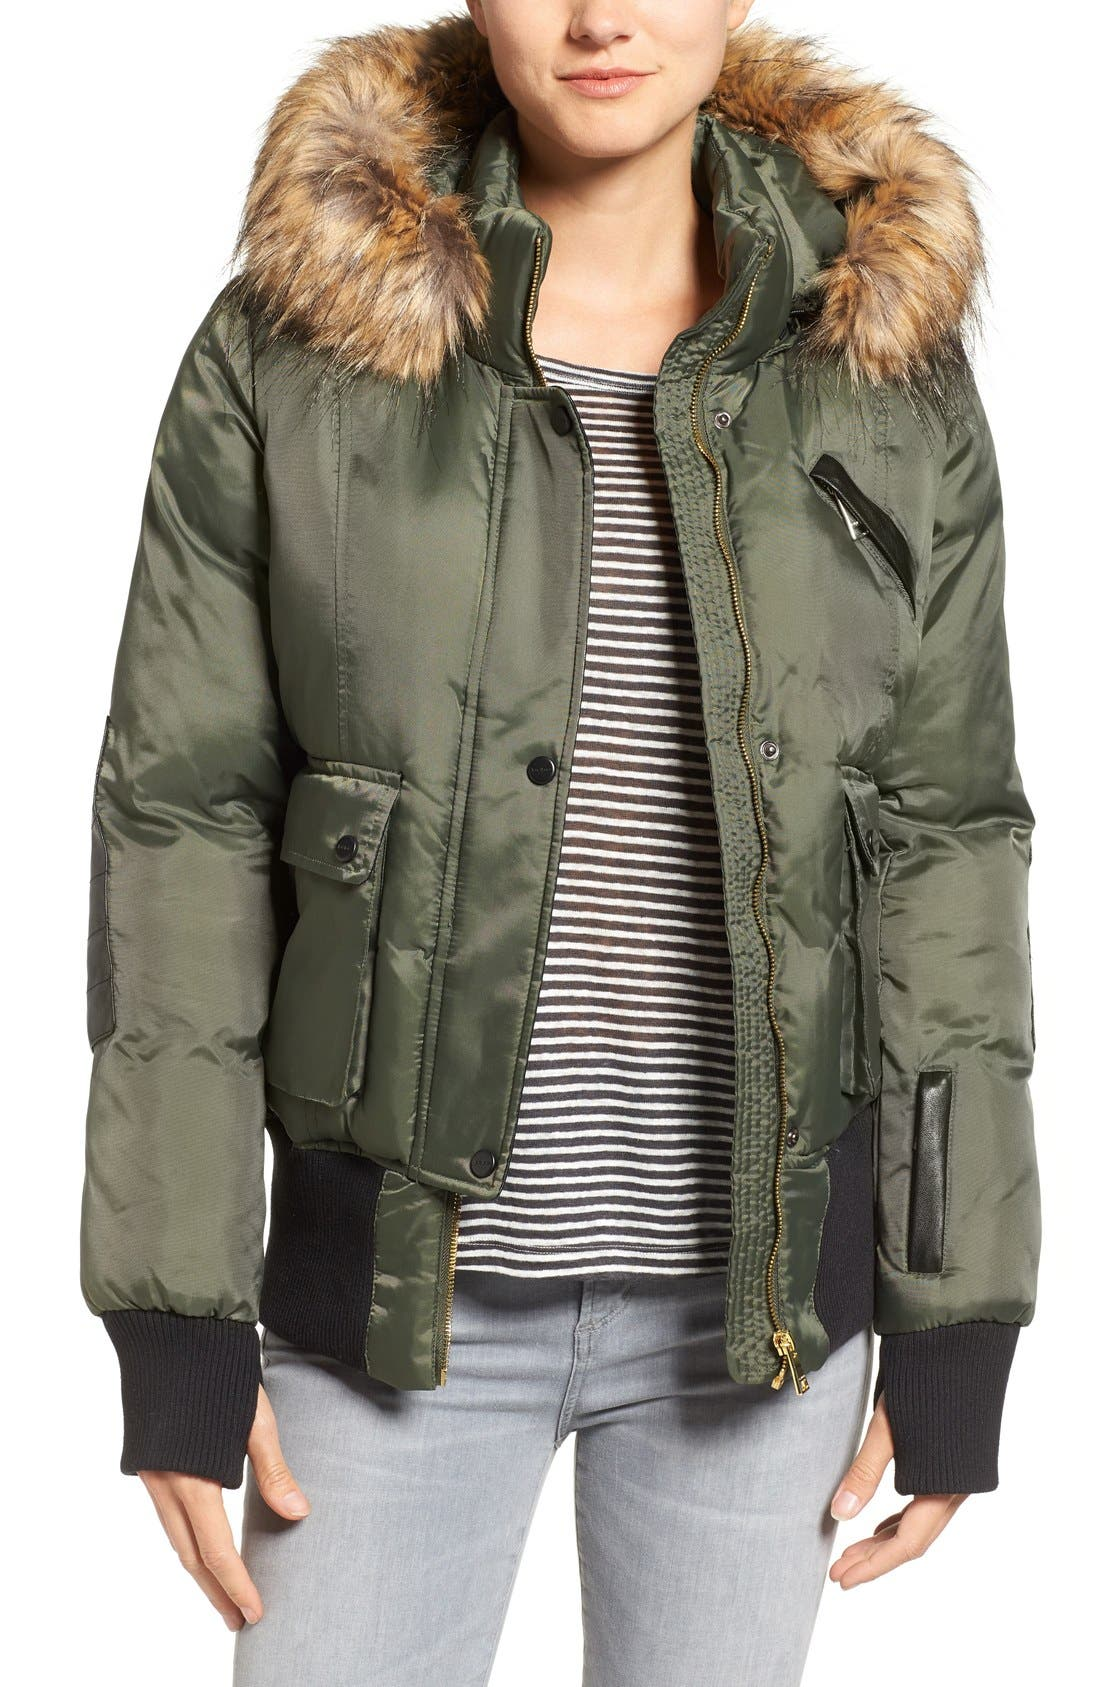 Main Image - bebe Faux Leather & Faux Fur Trim Bomber Jacket with Detachable Hood